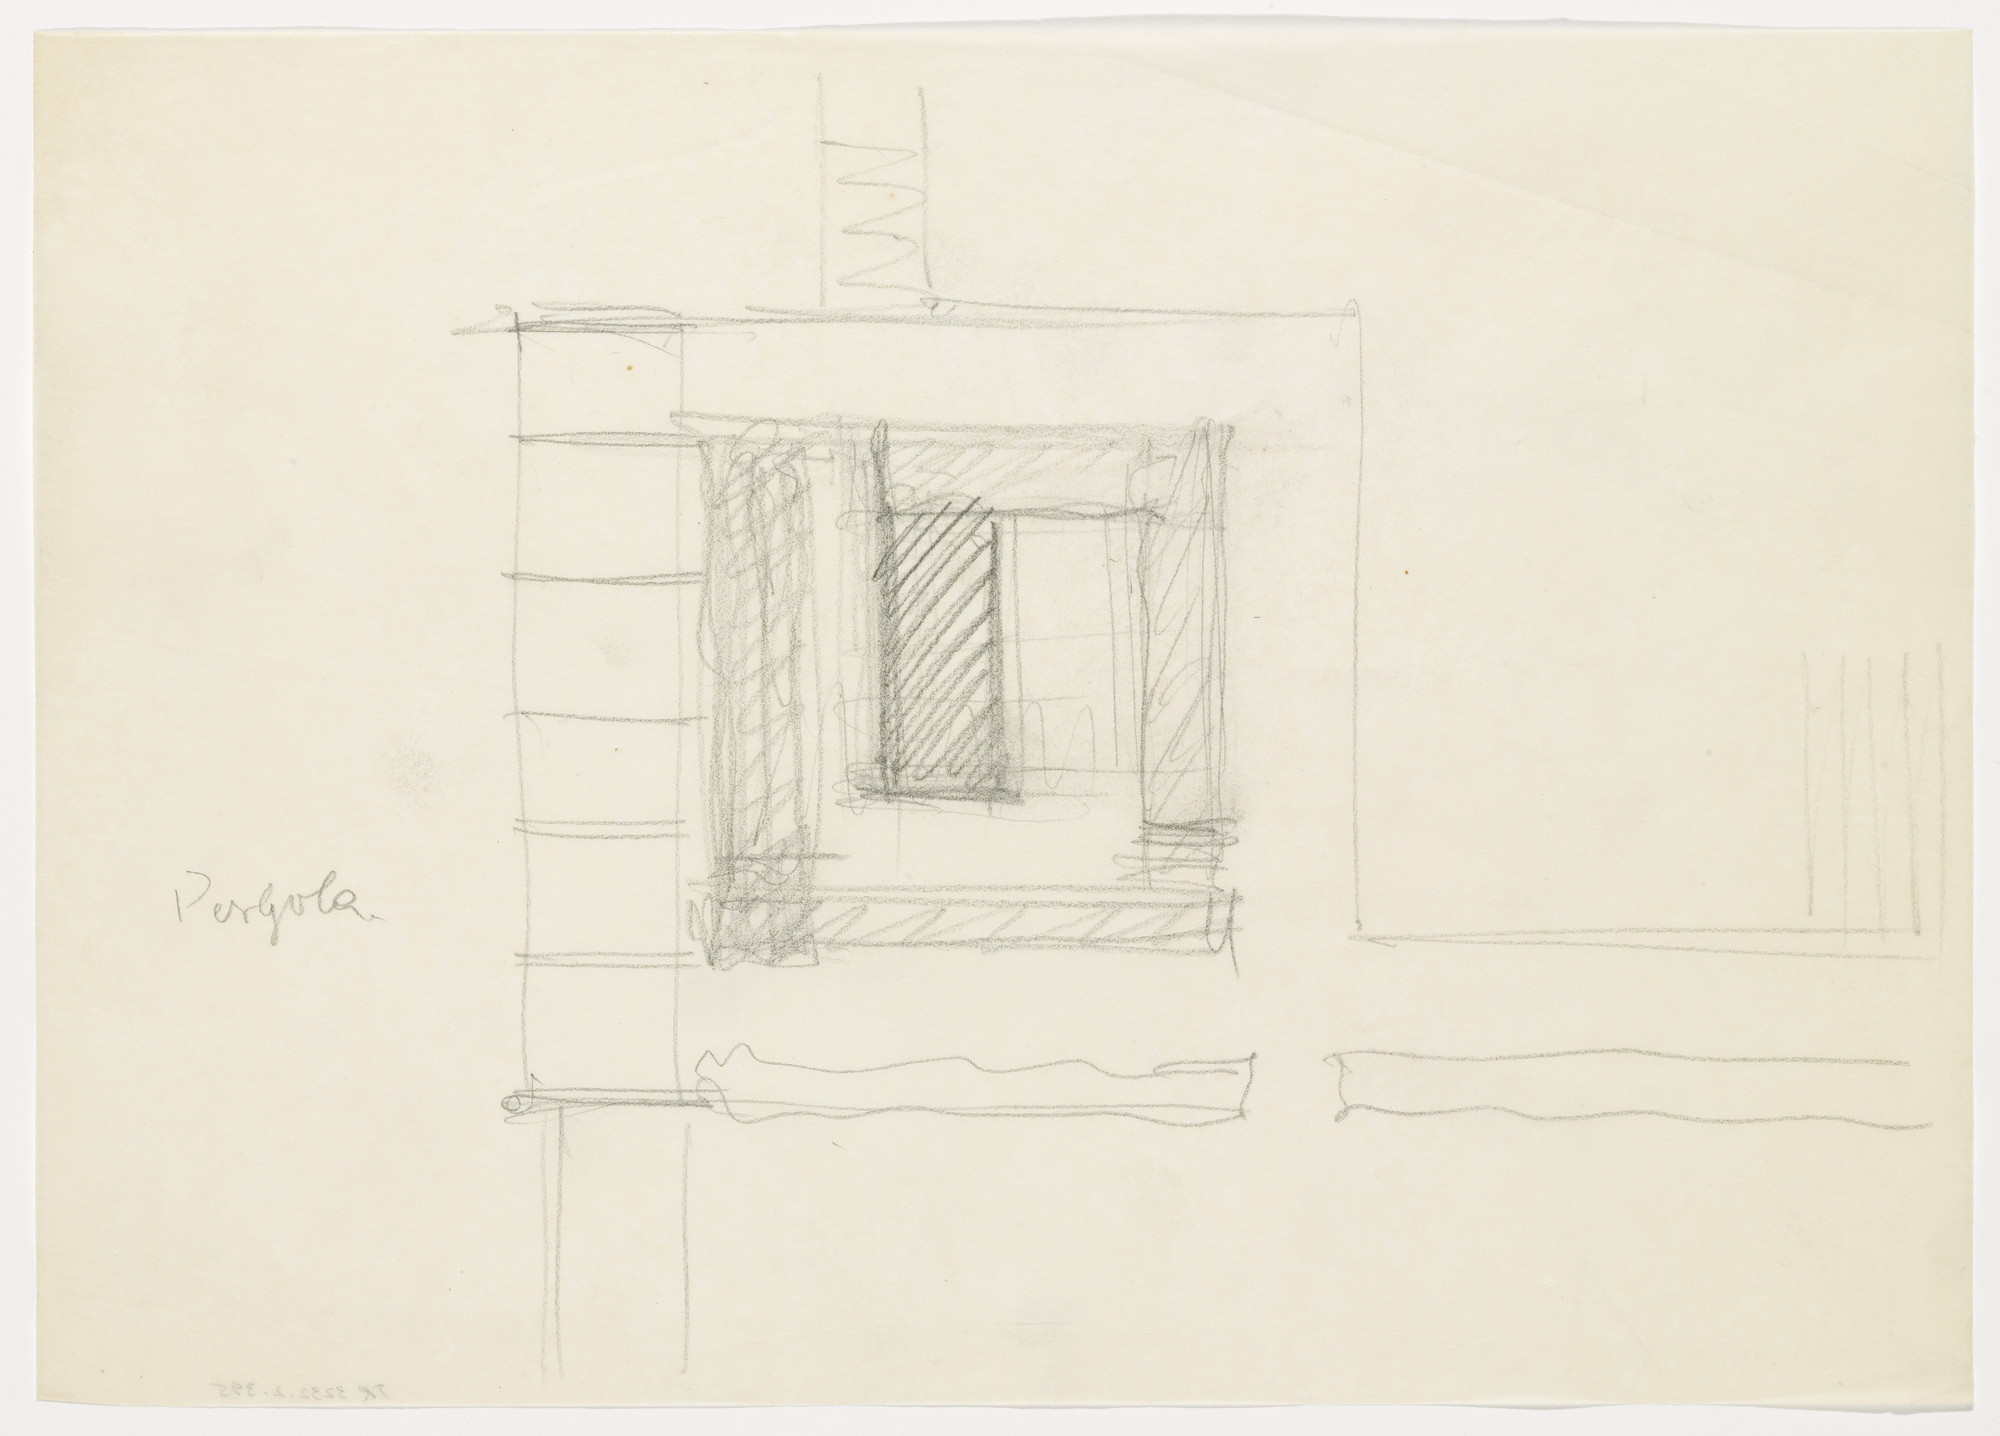 Ludwig Mies van der Rohe. Tugendhat House, Brno, Czech Republic, Pergola, southwest corner. Sketch. 1928-1930